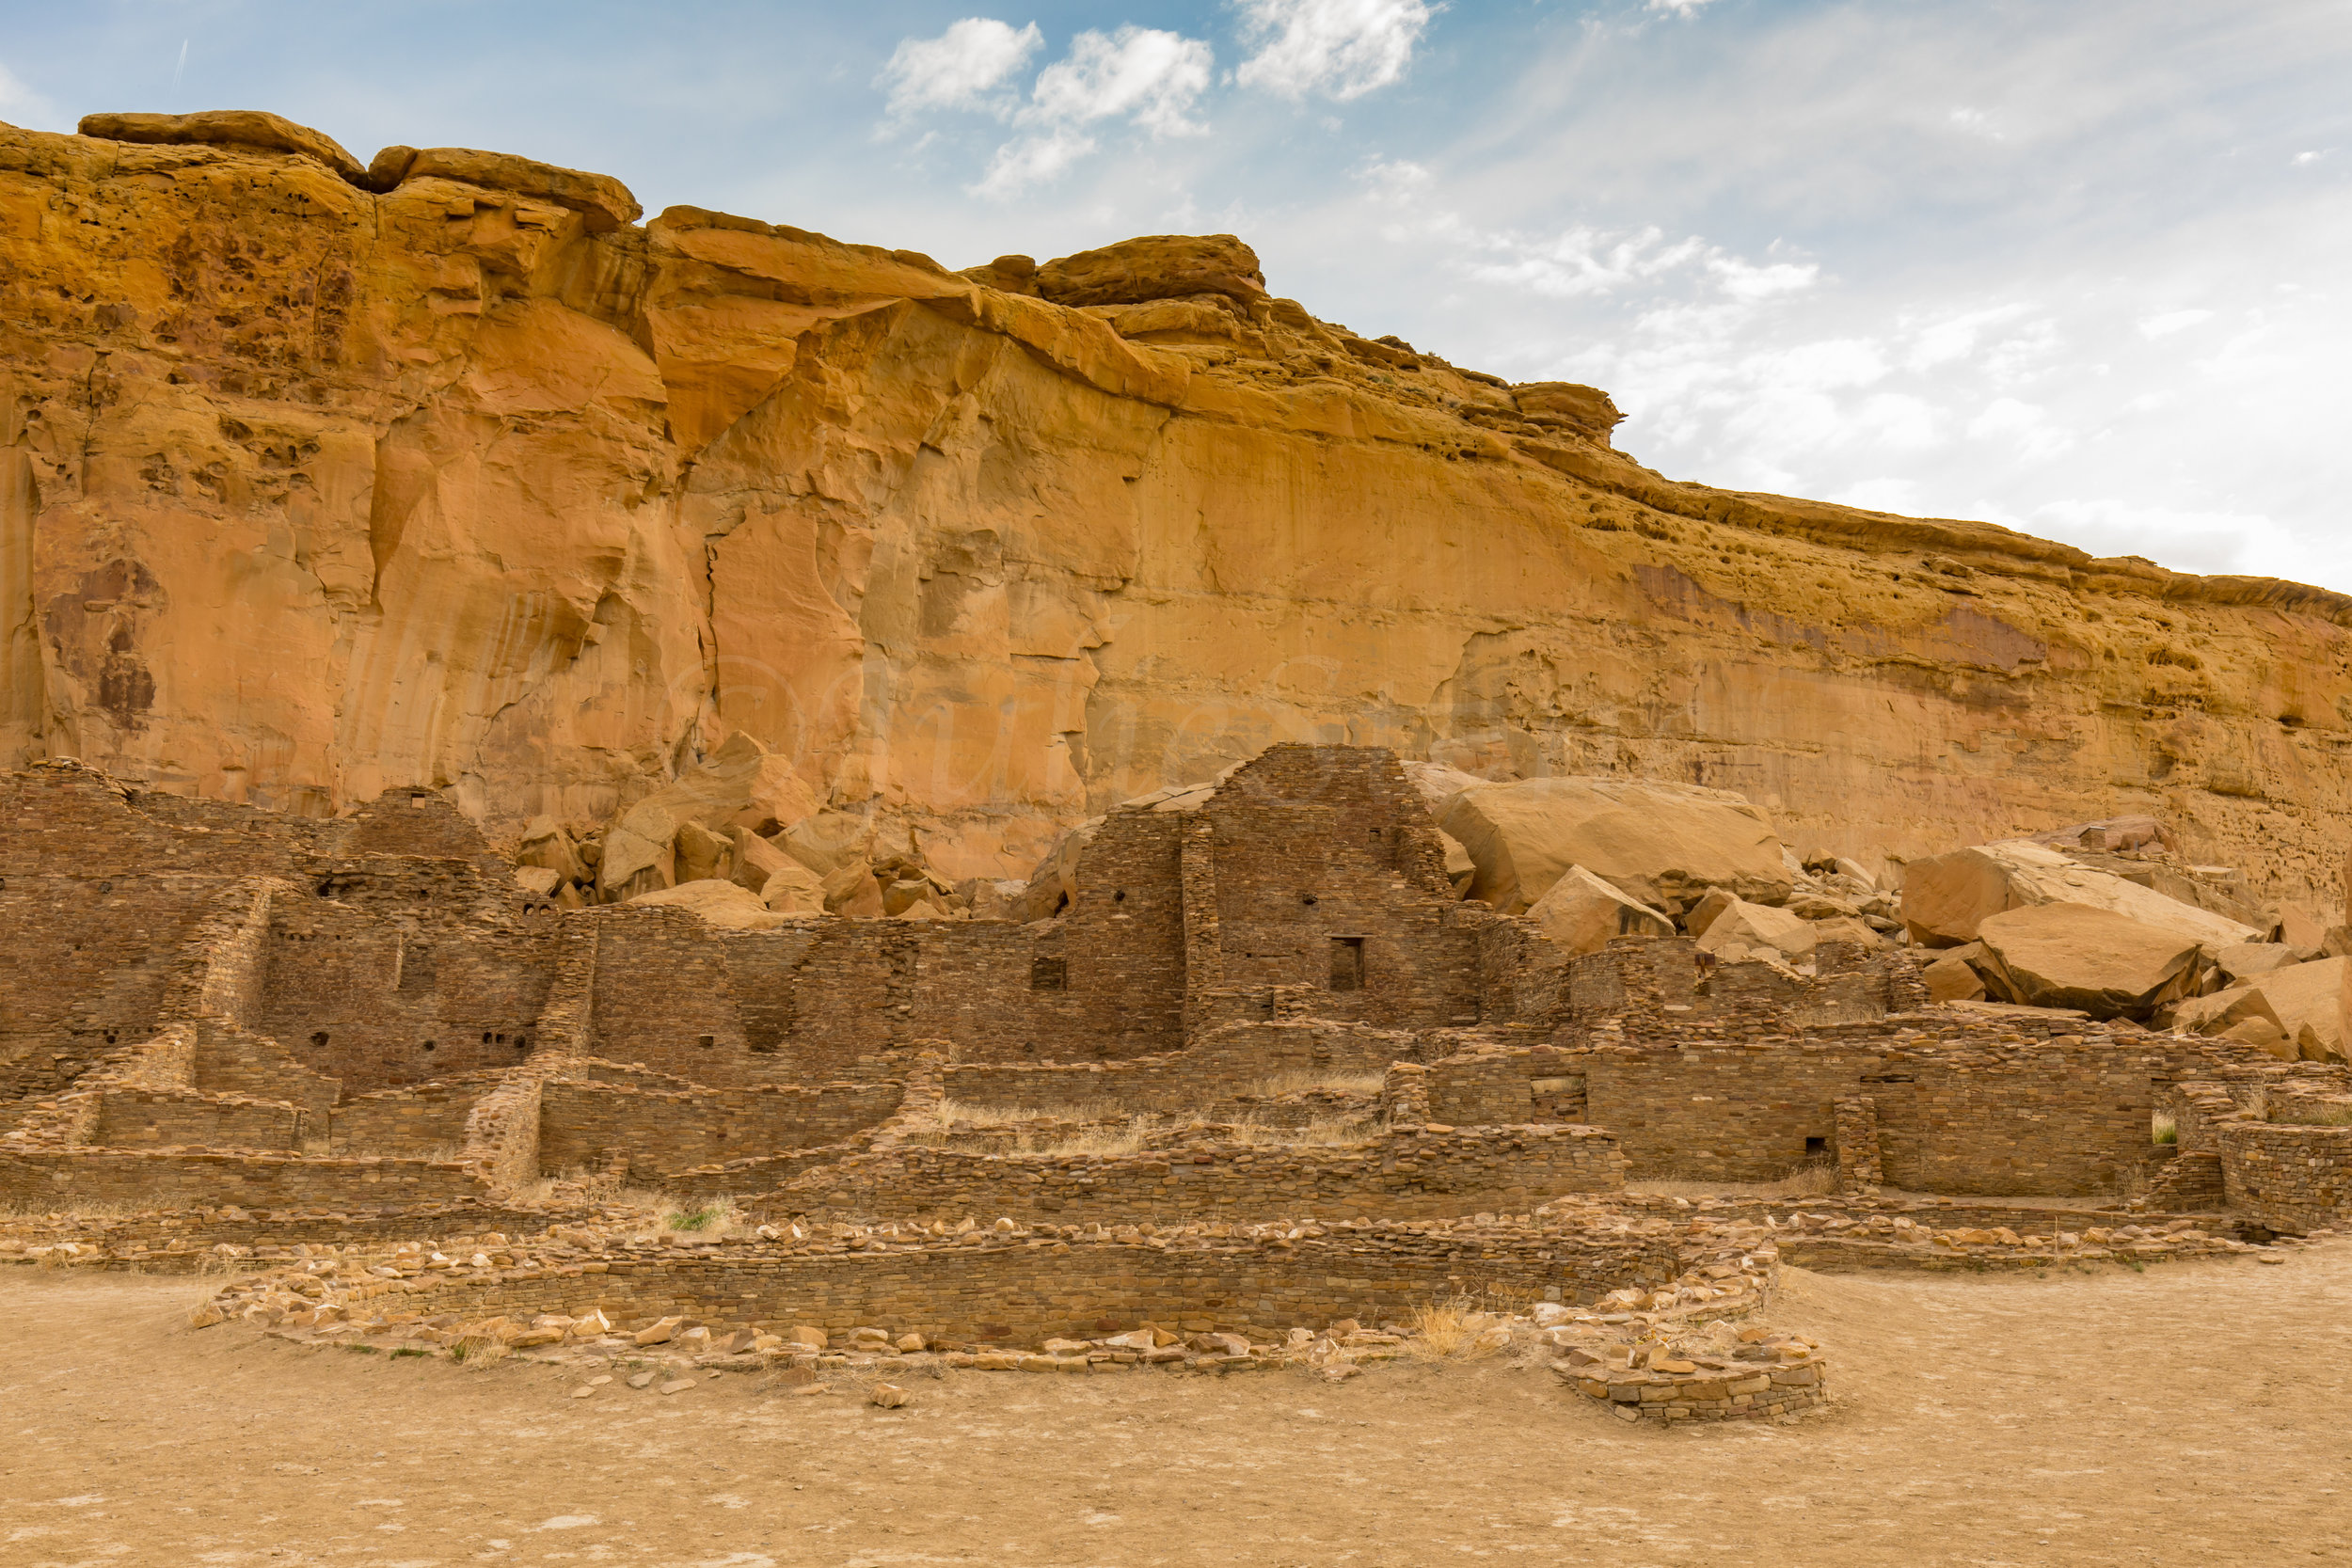 Chaco National Park, Image # 6214